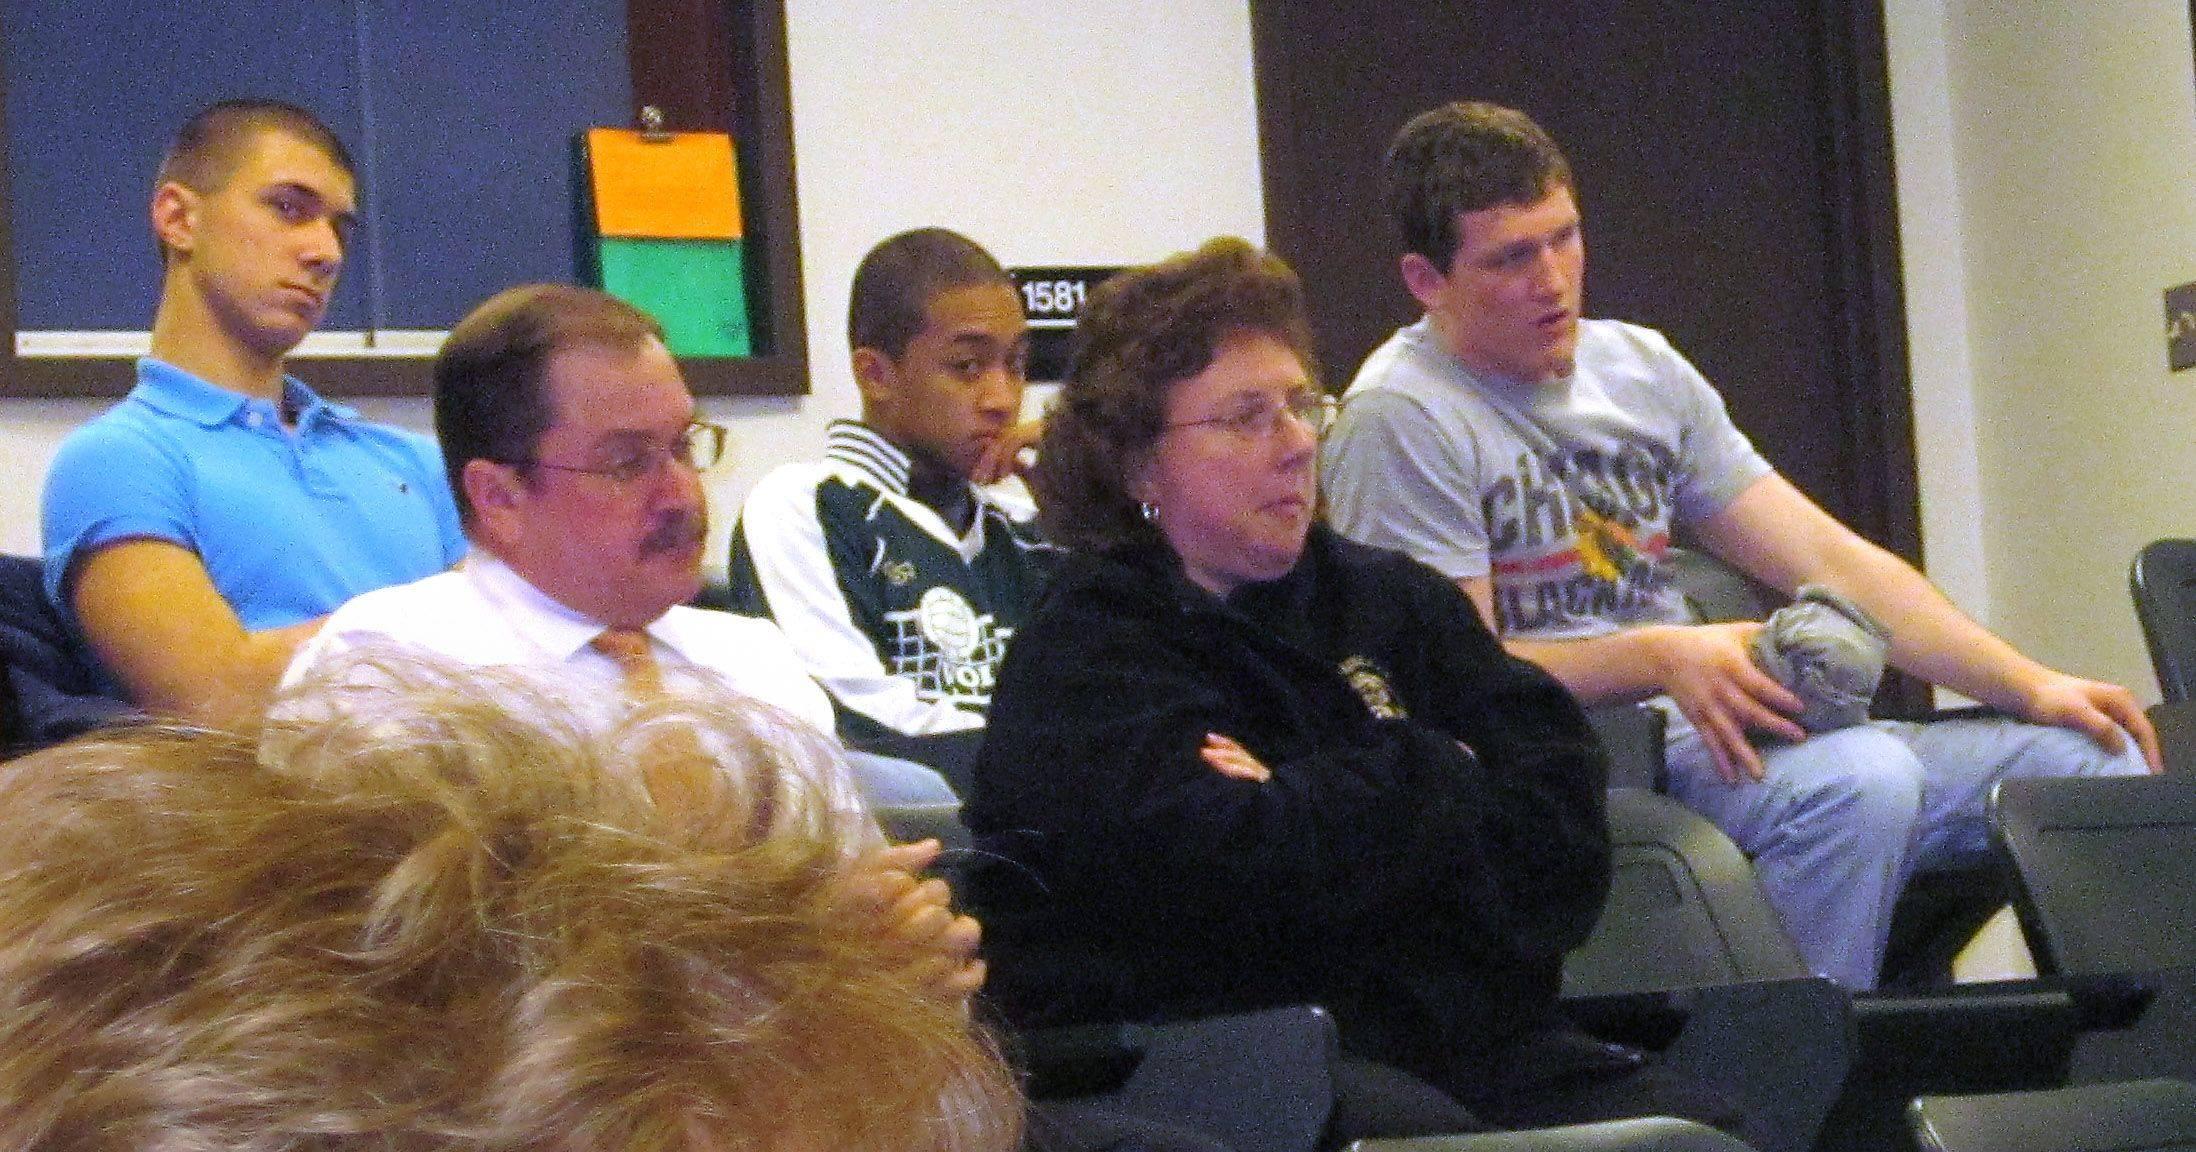 Bob Susnjara/bsusnjara@dailyherald.comParents Richard Downes, front left, and wife Debbie Downes spoke in support of Grayslake North High School's wrestling coaches during a board meeting Thursday evening.